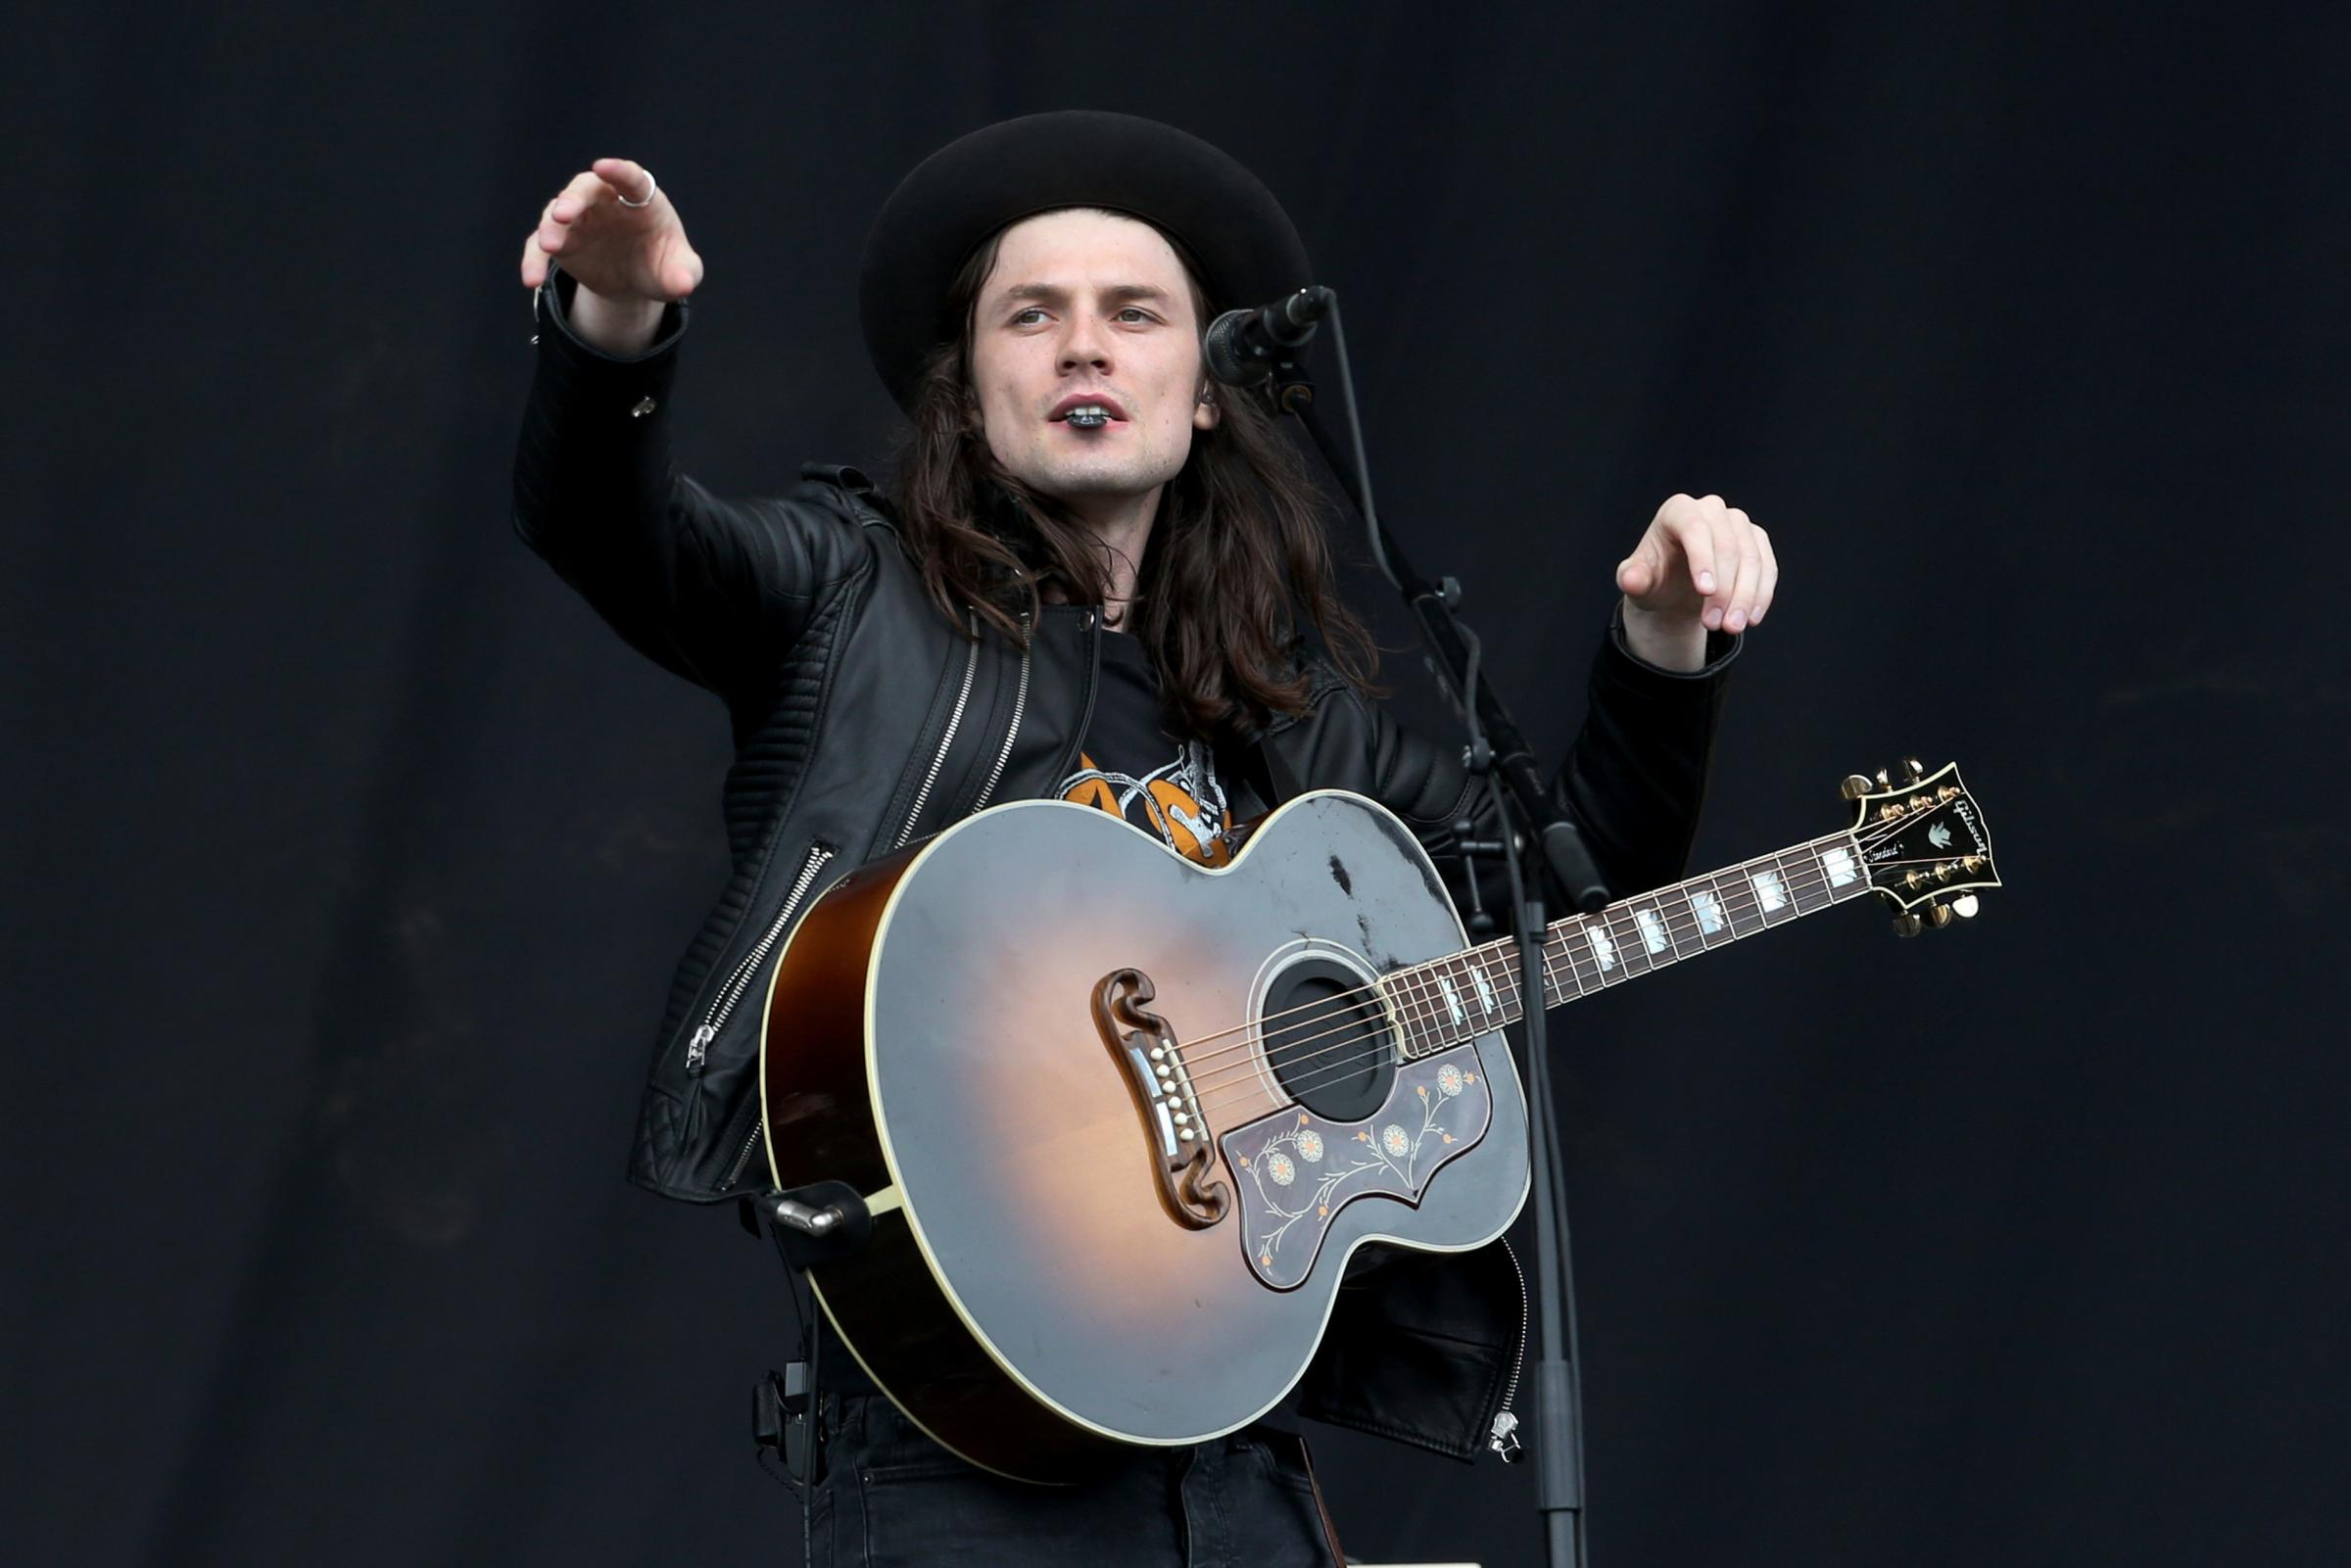 James Bay on the main stage during the third day of T in the Park, the annual music festival held at Strathallan Castle, Perthshire. PRESS ASSOCIATION Photo. Picture date: Sunday July 10, 2016. Photo credit should read: Jane Barlow/PA Wire.